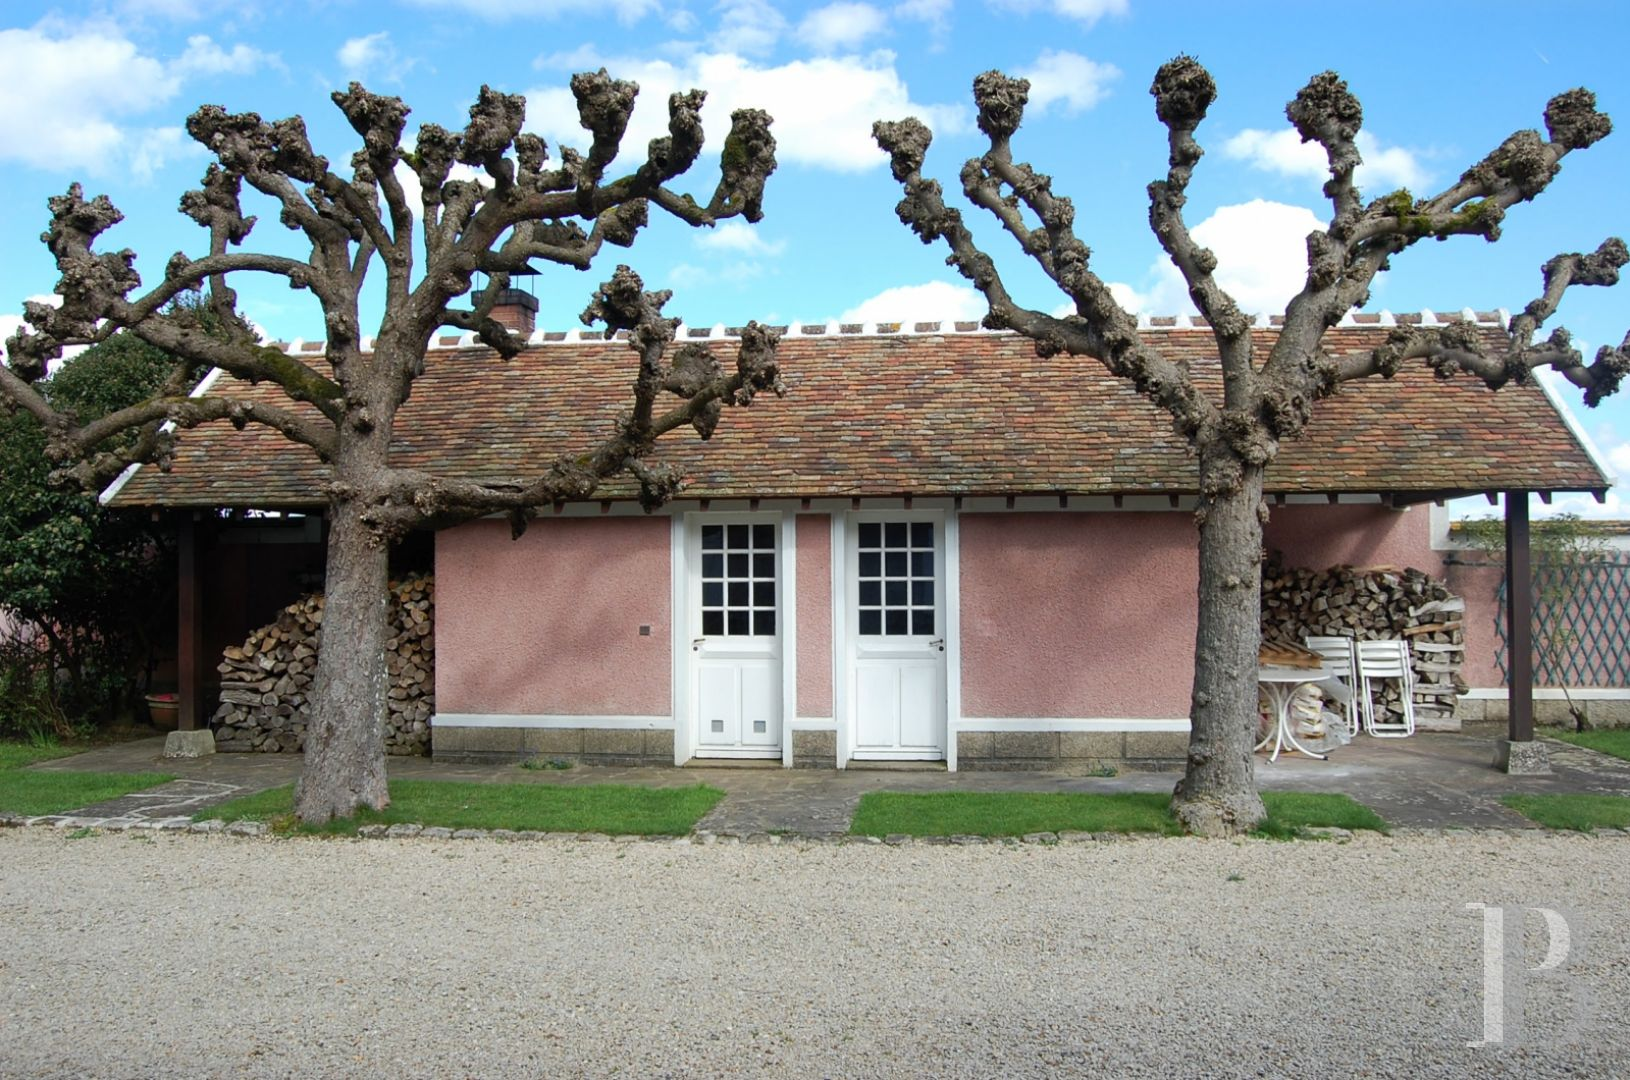 character properties France ile de france hunting lodge - 6 zoom